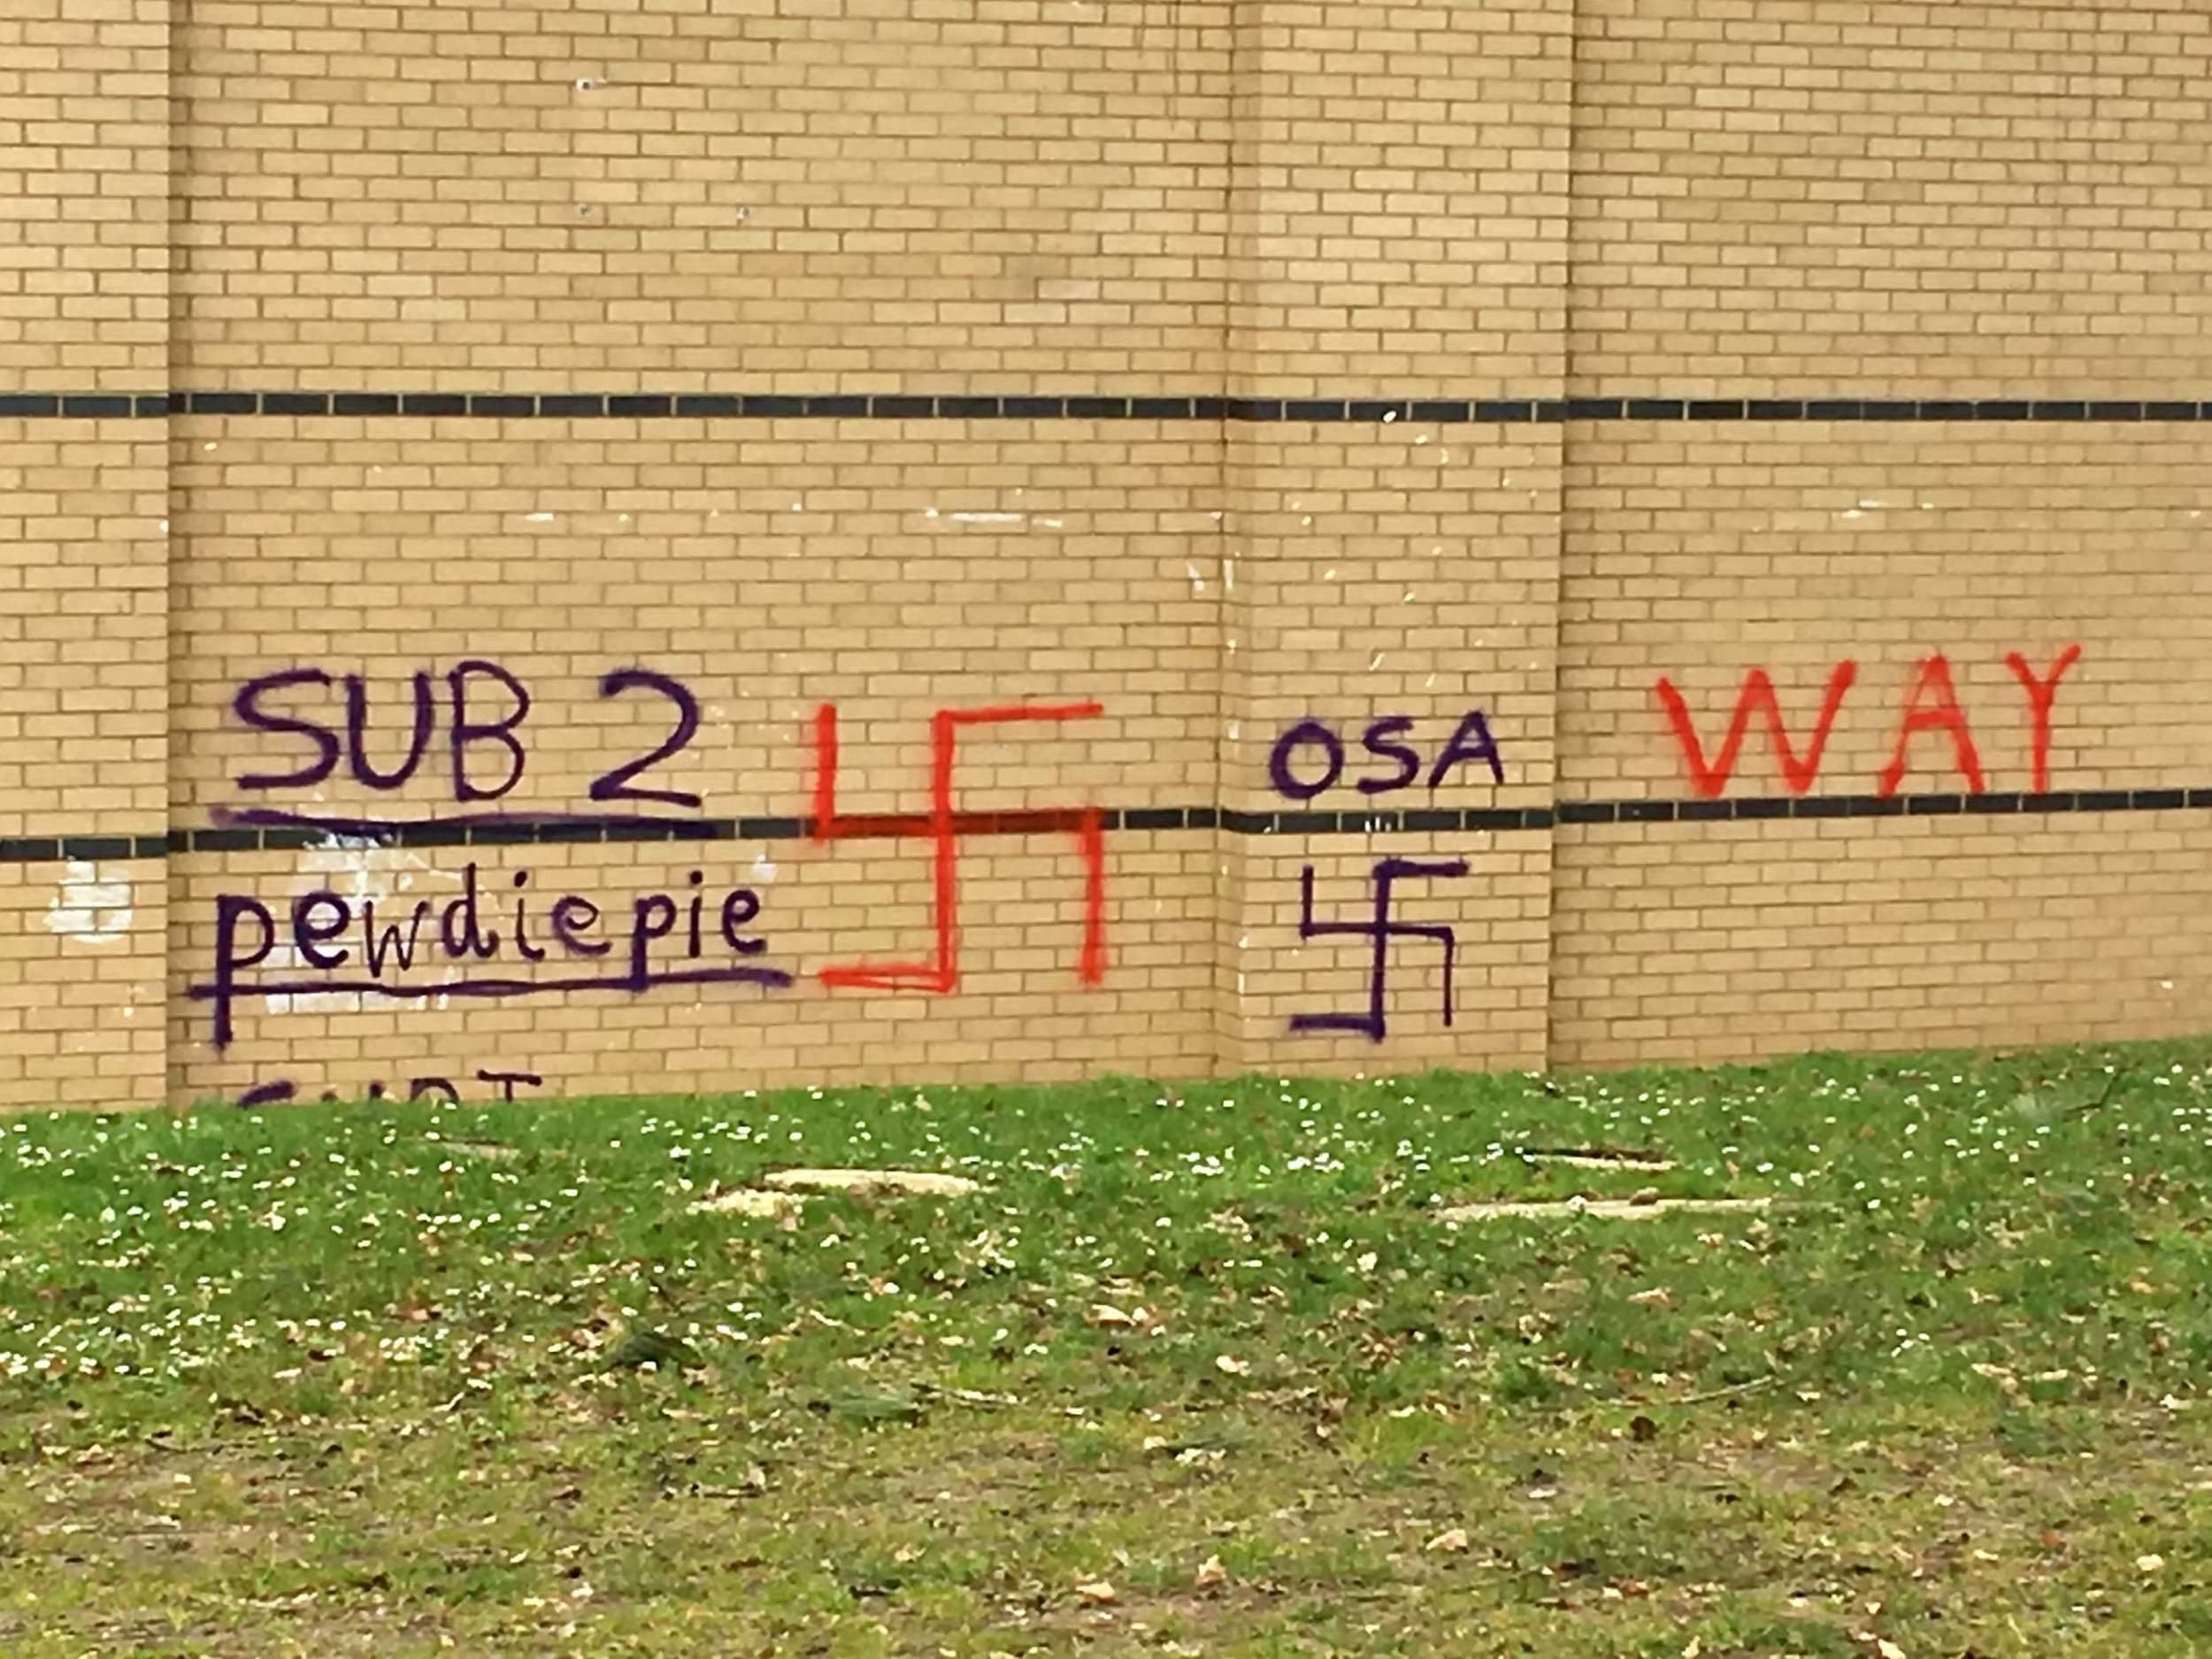 Vandals have scrawled Nazi swastikas and a shocking reference to the horrific New Zealand shooting massacre on the side of a school in Oxford. See SWNS story SWBRnazi; SWASTIKAS have been scrawled across a school wall in Oxford. The Nazi graffiti was spotted daubed on a back wall of Cheney School in Headington today. It sits alongside further offensive wording including obscenities and a nod to Swedish YouTuber 'PewDiePie' - a reference reportedly made during the New Zealand shootings on Friday. It is believed a gunman involved in the attack on a mosque in Christchurch, New Zealand, in which 49 people were killed, urged people to subscribe to 'PewDiePie' before opening fire.